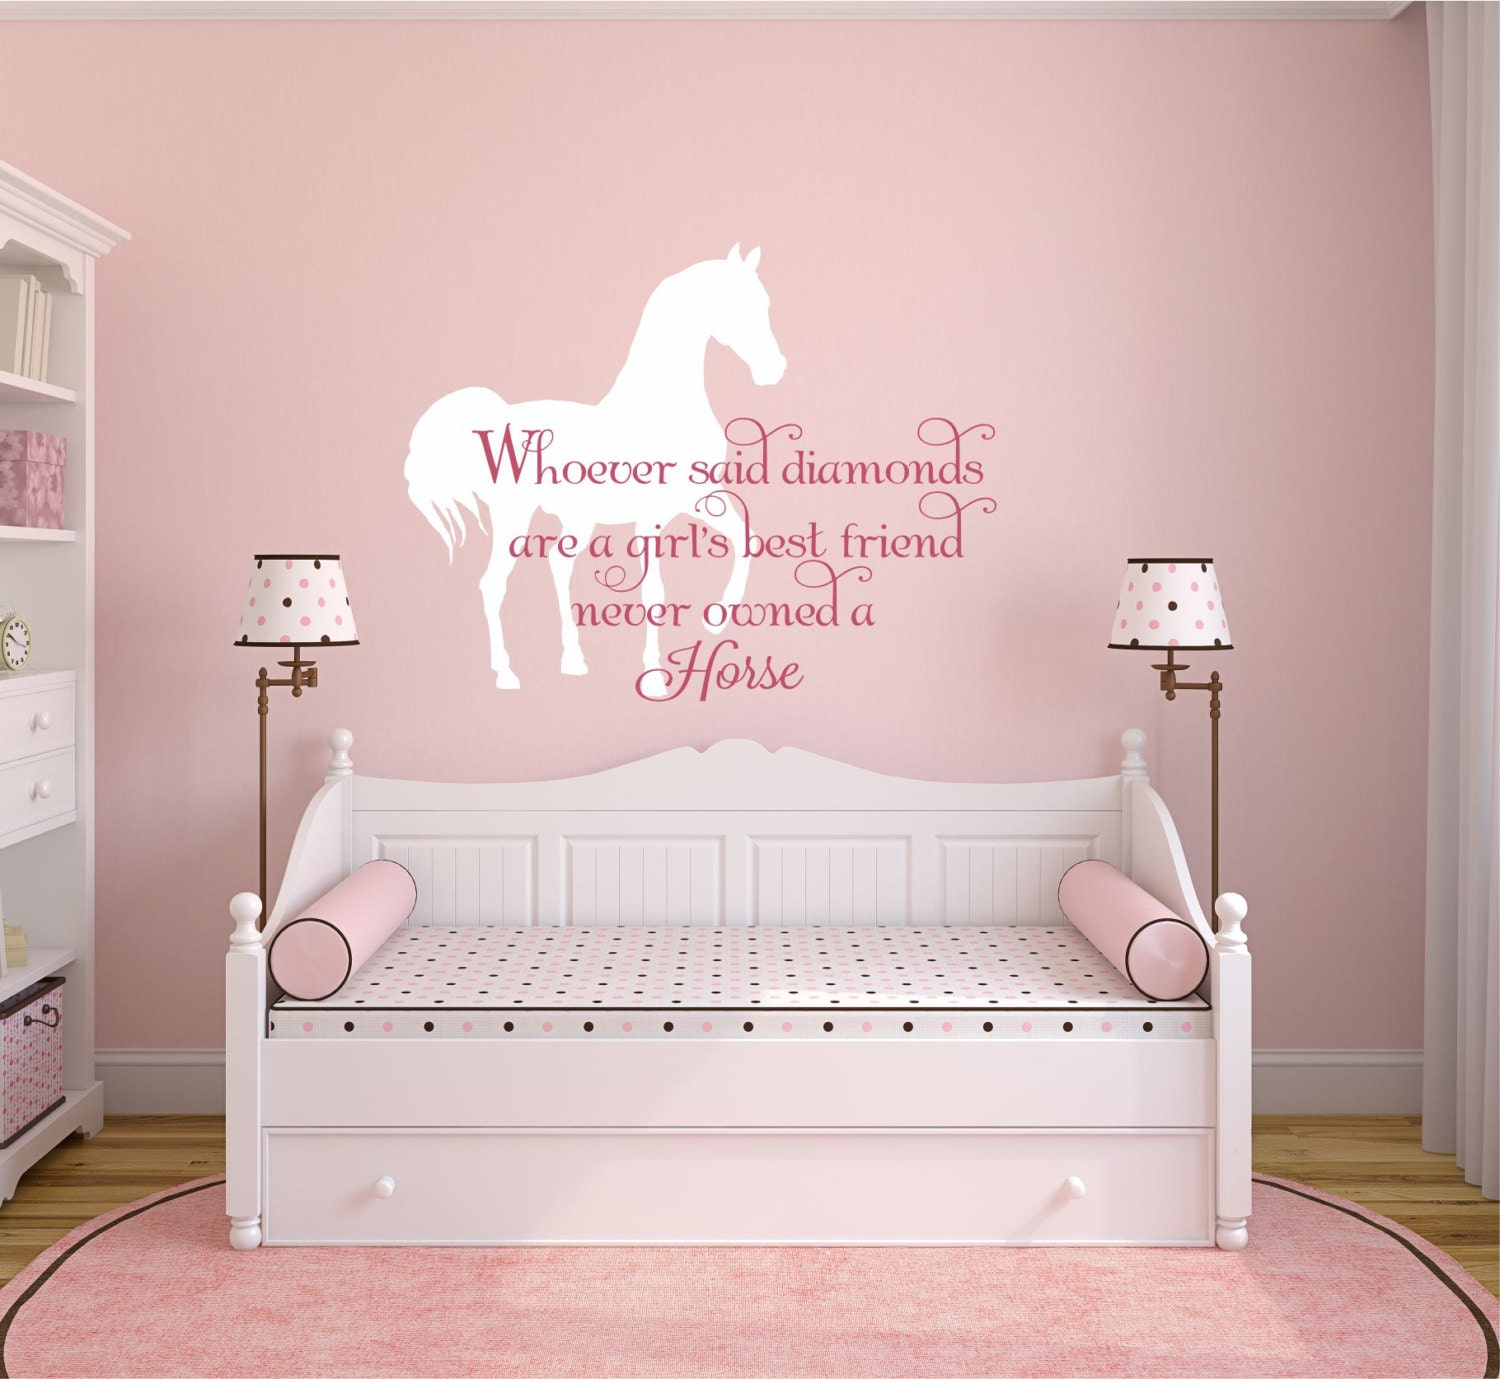 Horse wall decal horse decal horse decor equine decor for Horse bedroom decor